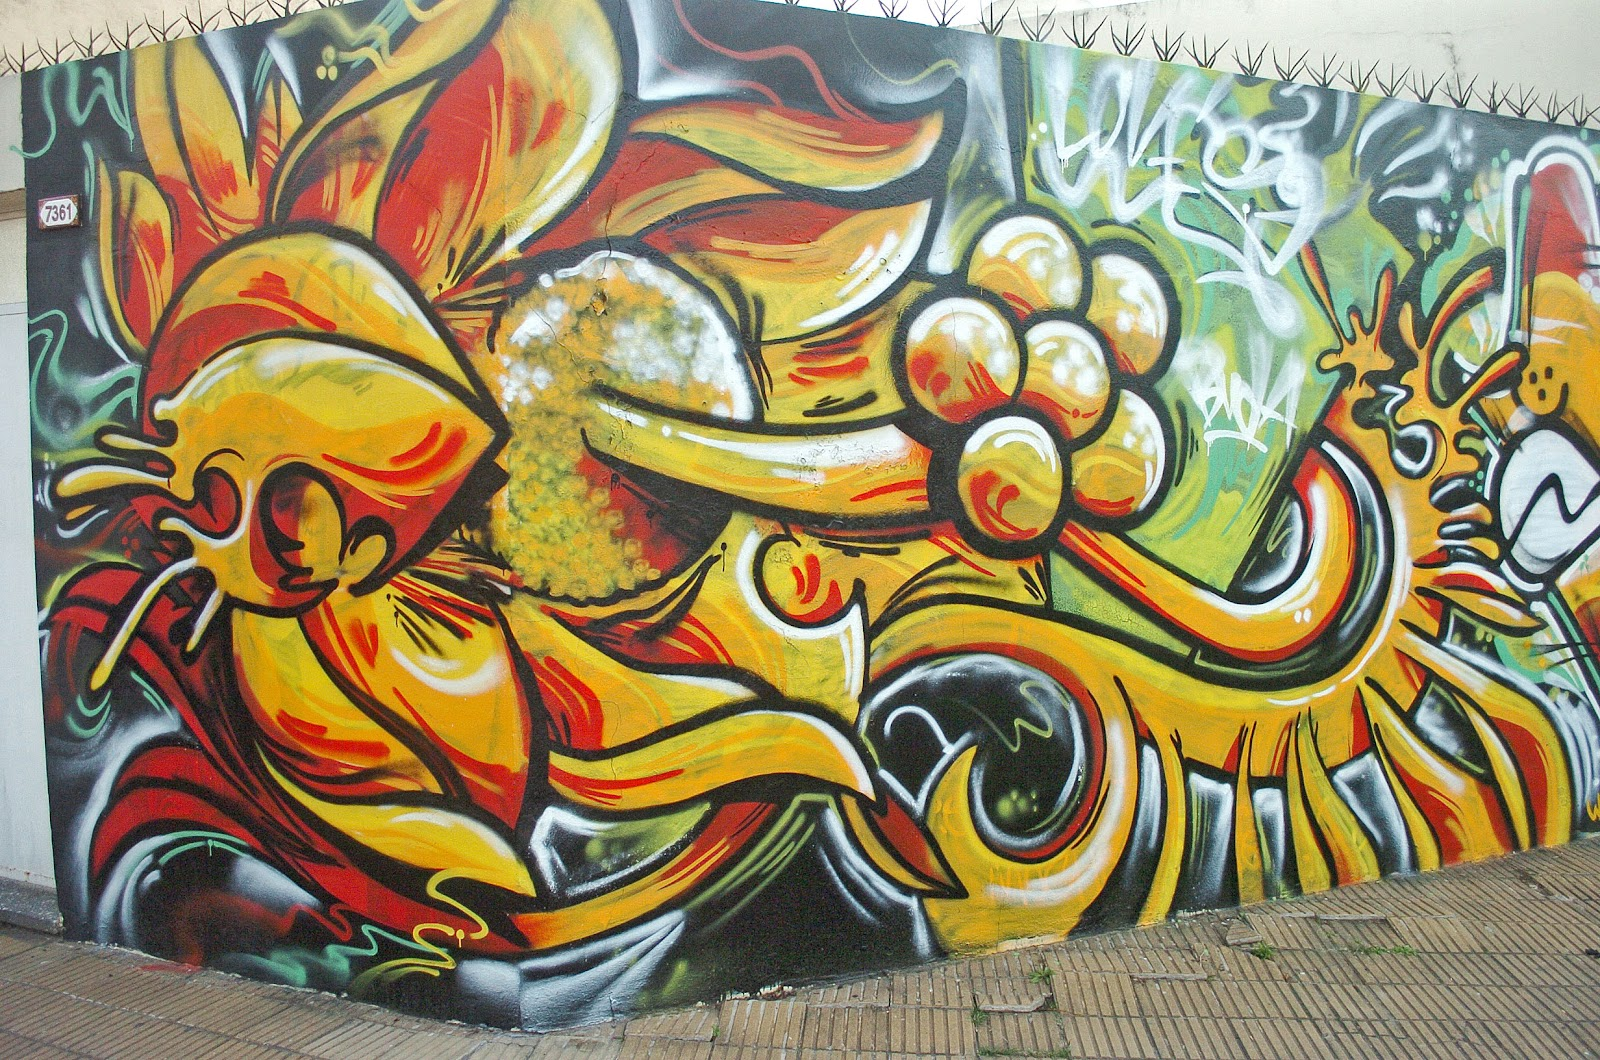 CAPITAL FEDERAL- GRAFFITIS - STREET ART - BANDERAS DE EGRESADOS: 07/12